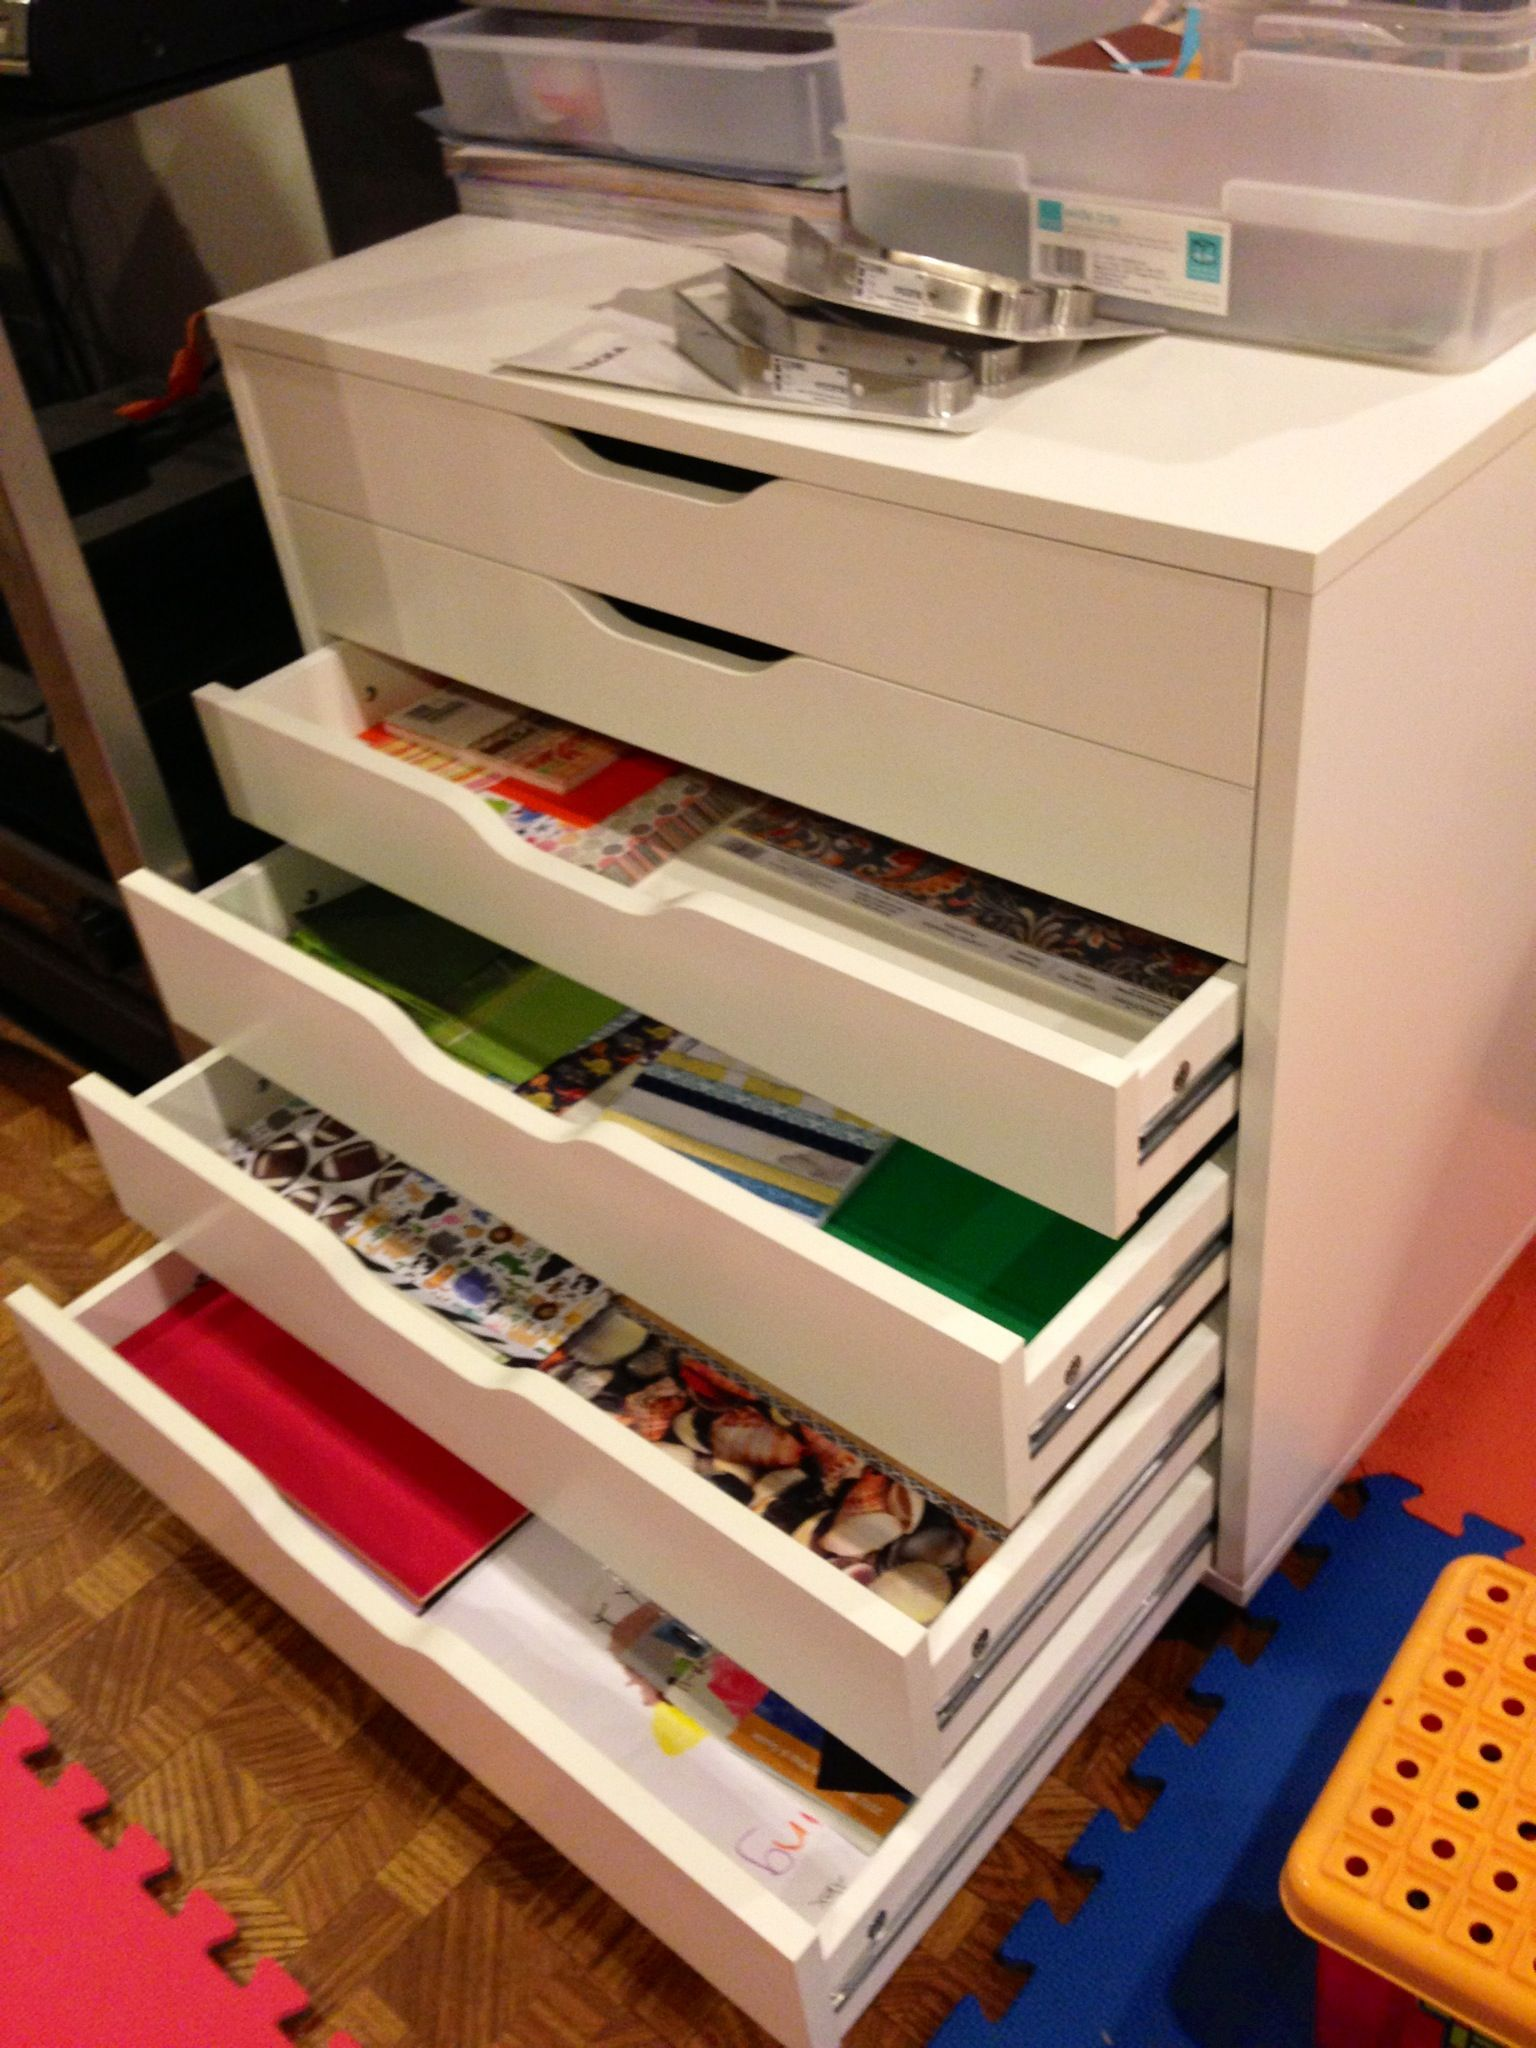 Scrapbook room storage ideas -  119 Great For Scrapbook Storage Should Have Bought 2